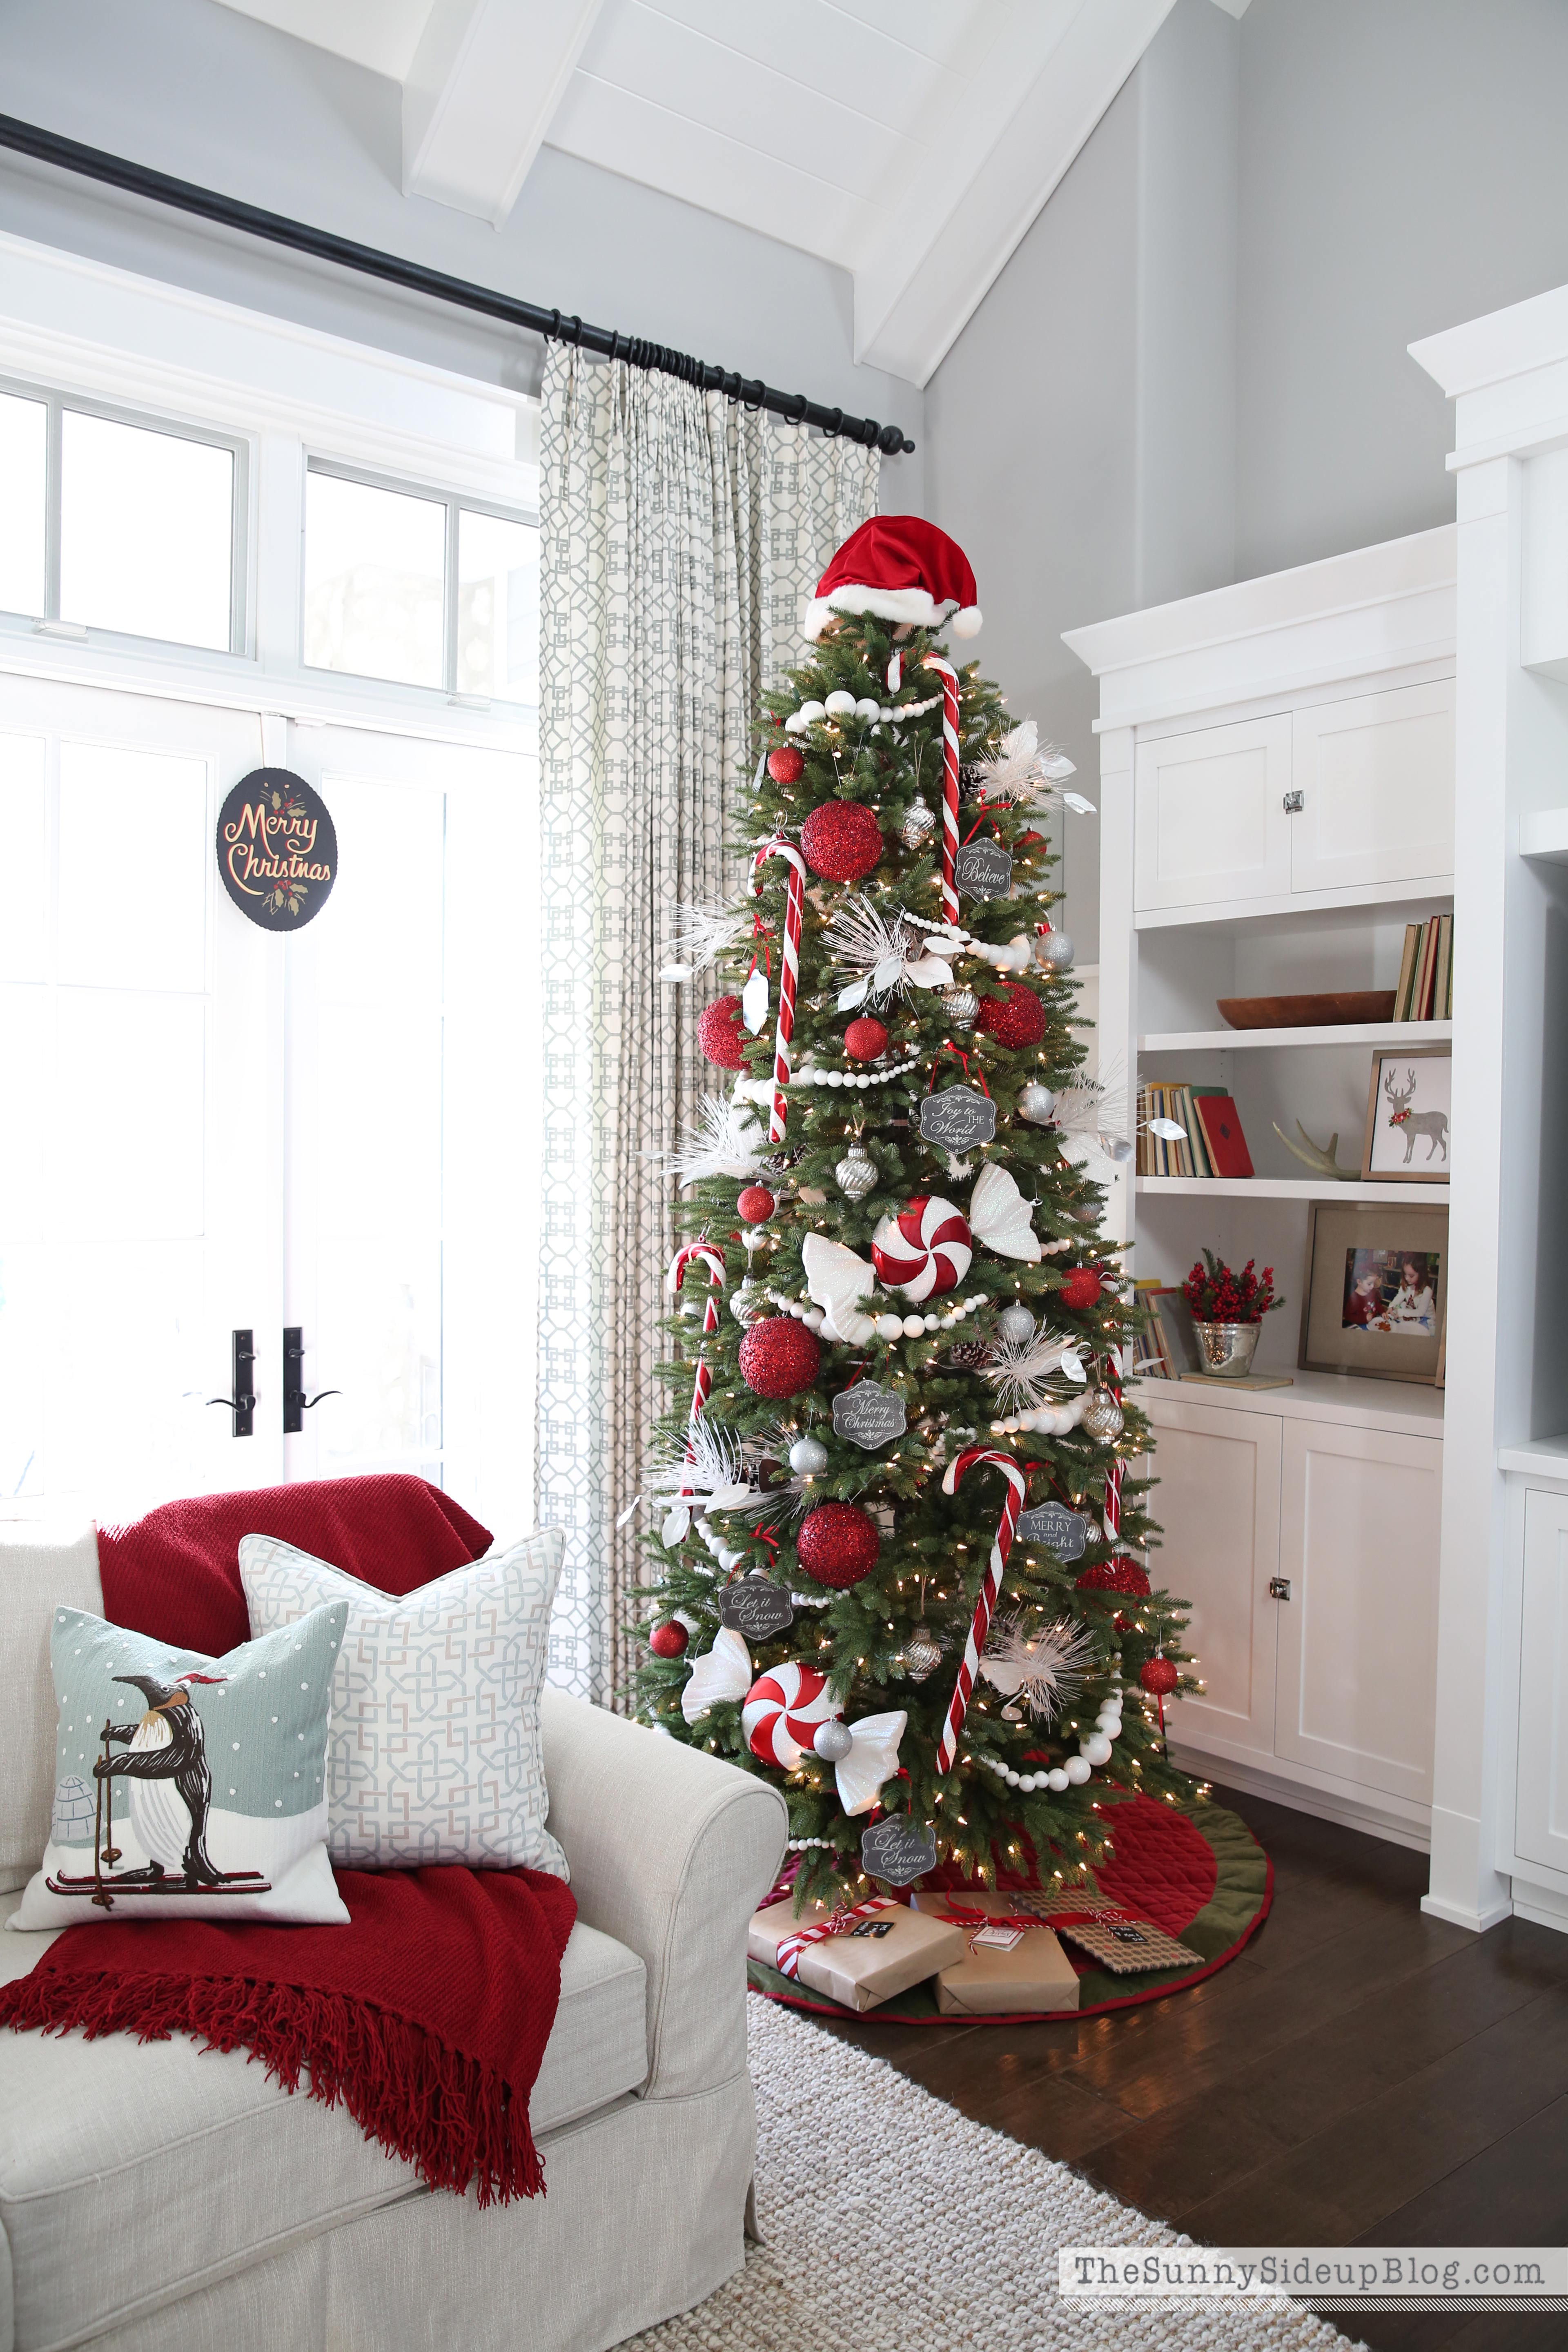 Our Christmas Tree - The Sunny Side Up Blog